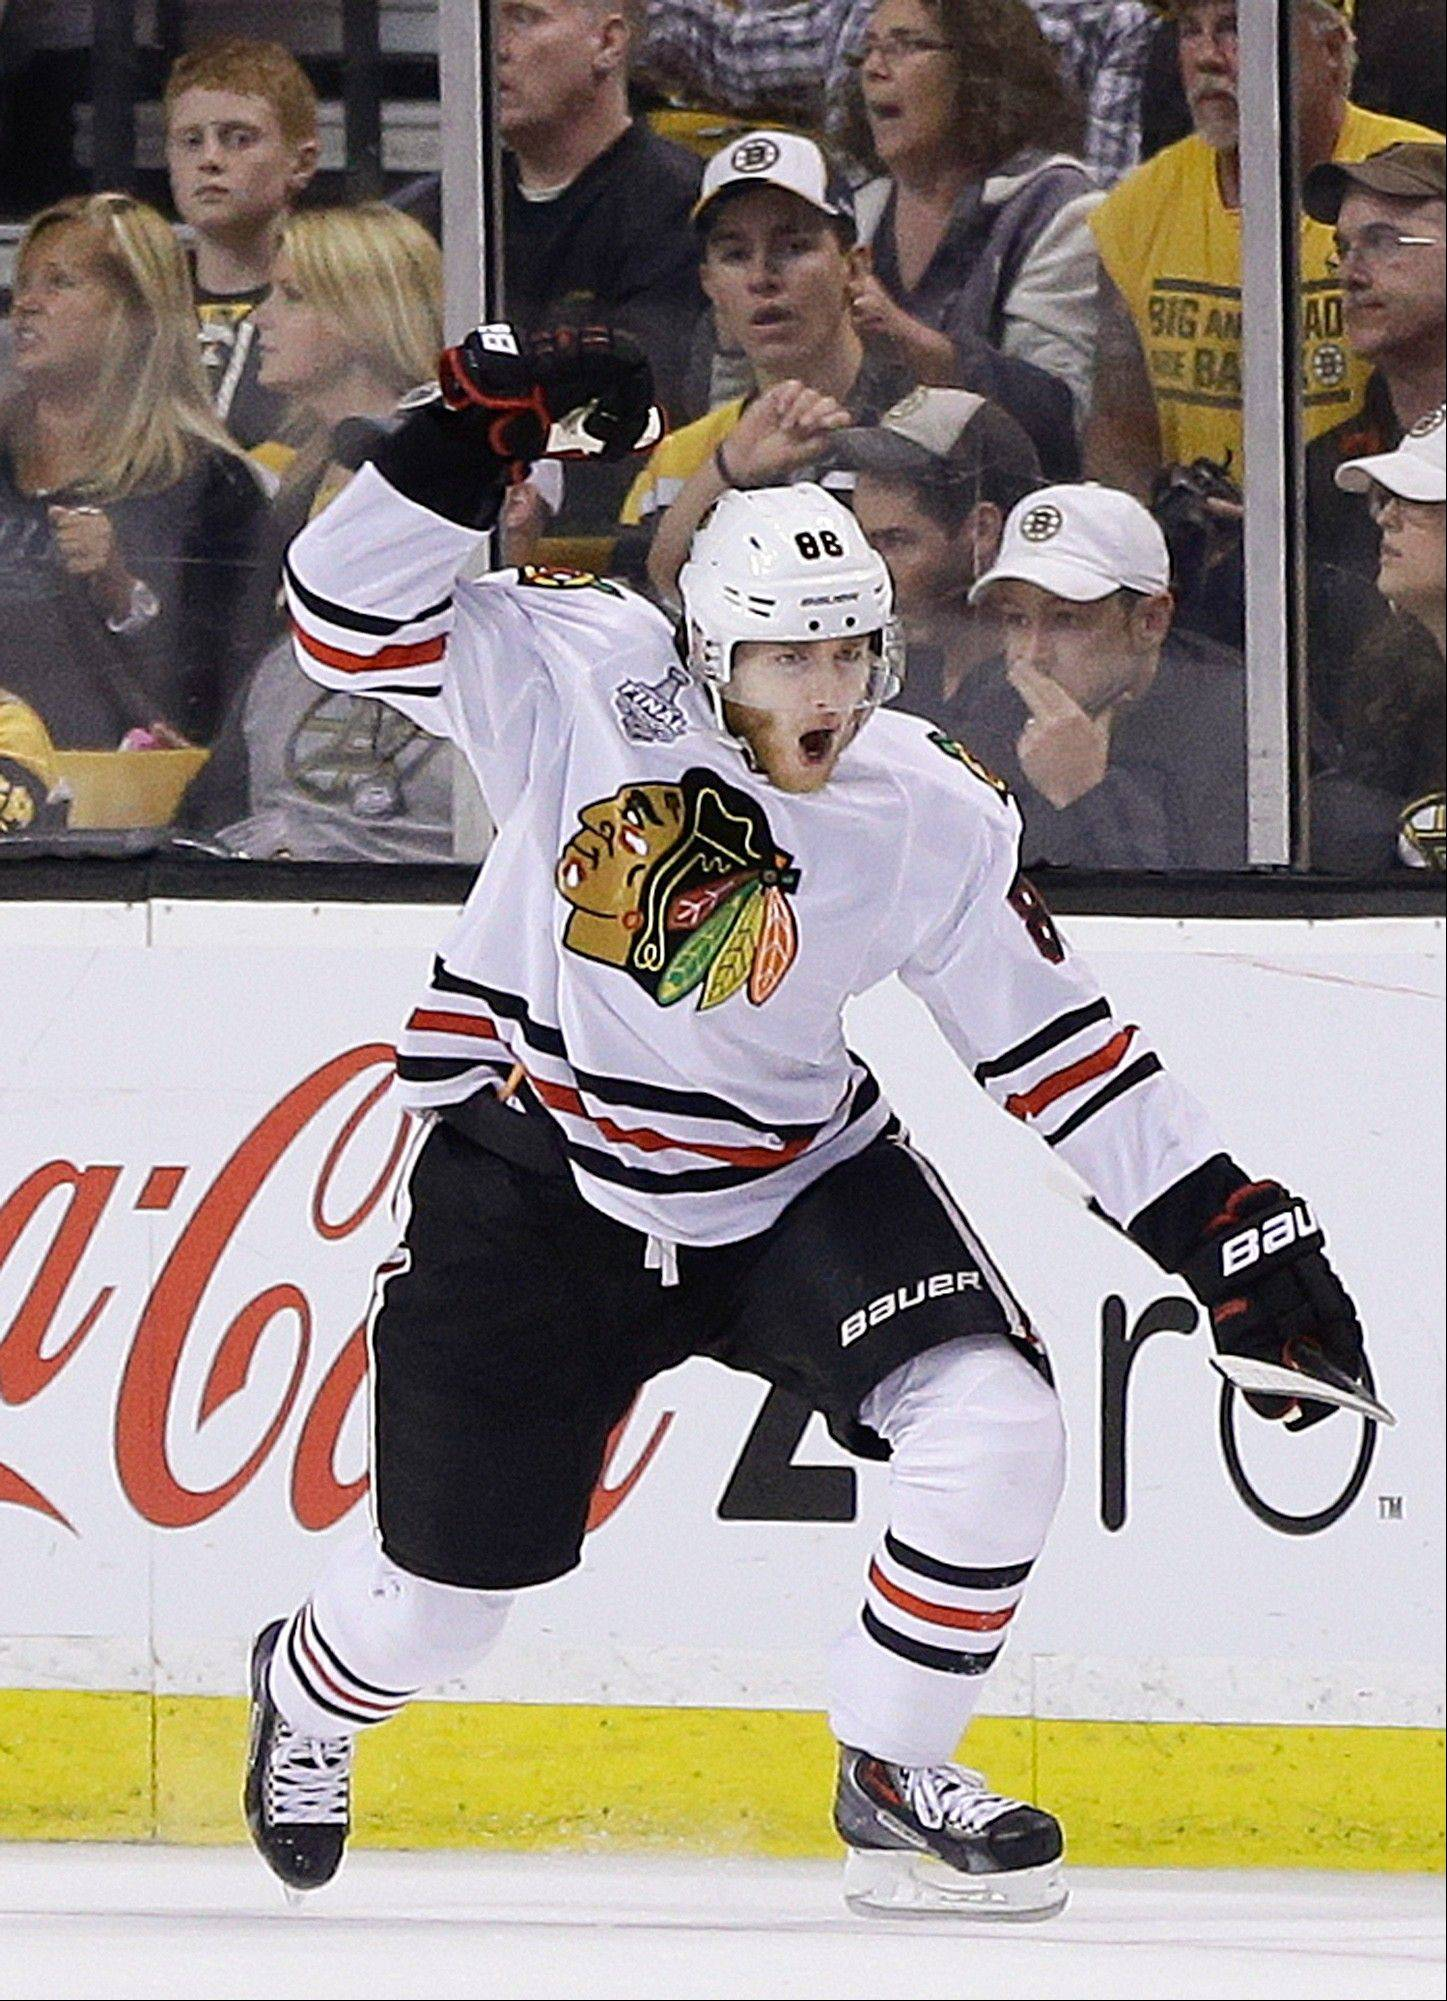 Blackhawks right wing Patrick Kane (88) celebrates his goal against the Bruins during Wednesday night's game in Boston.